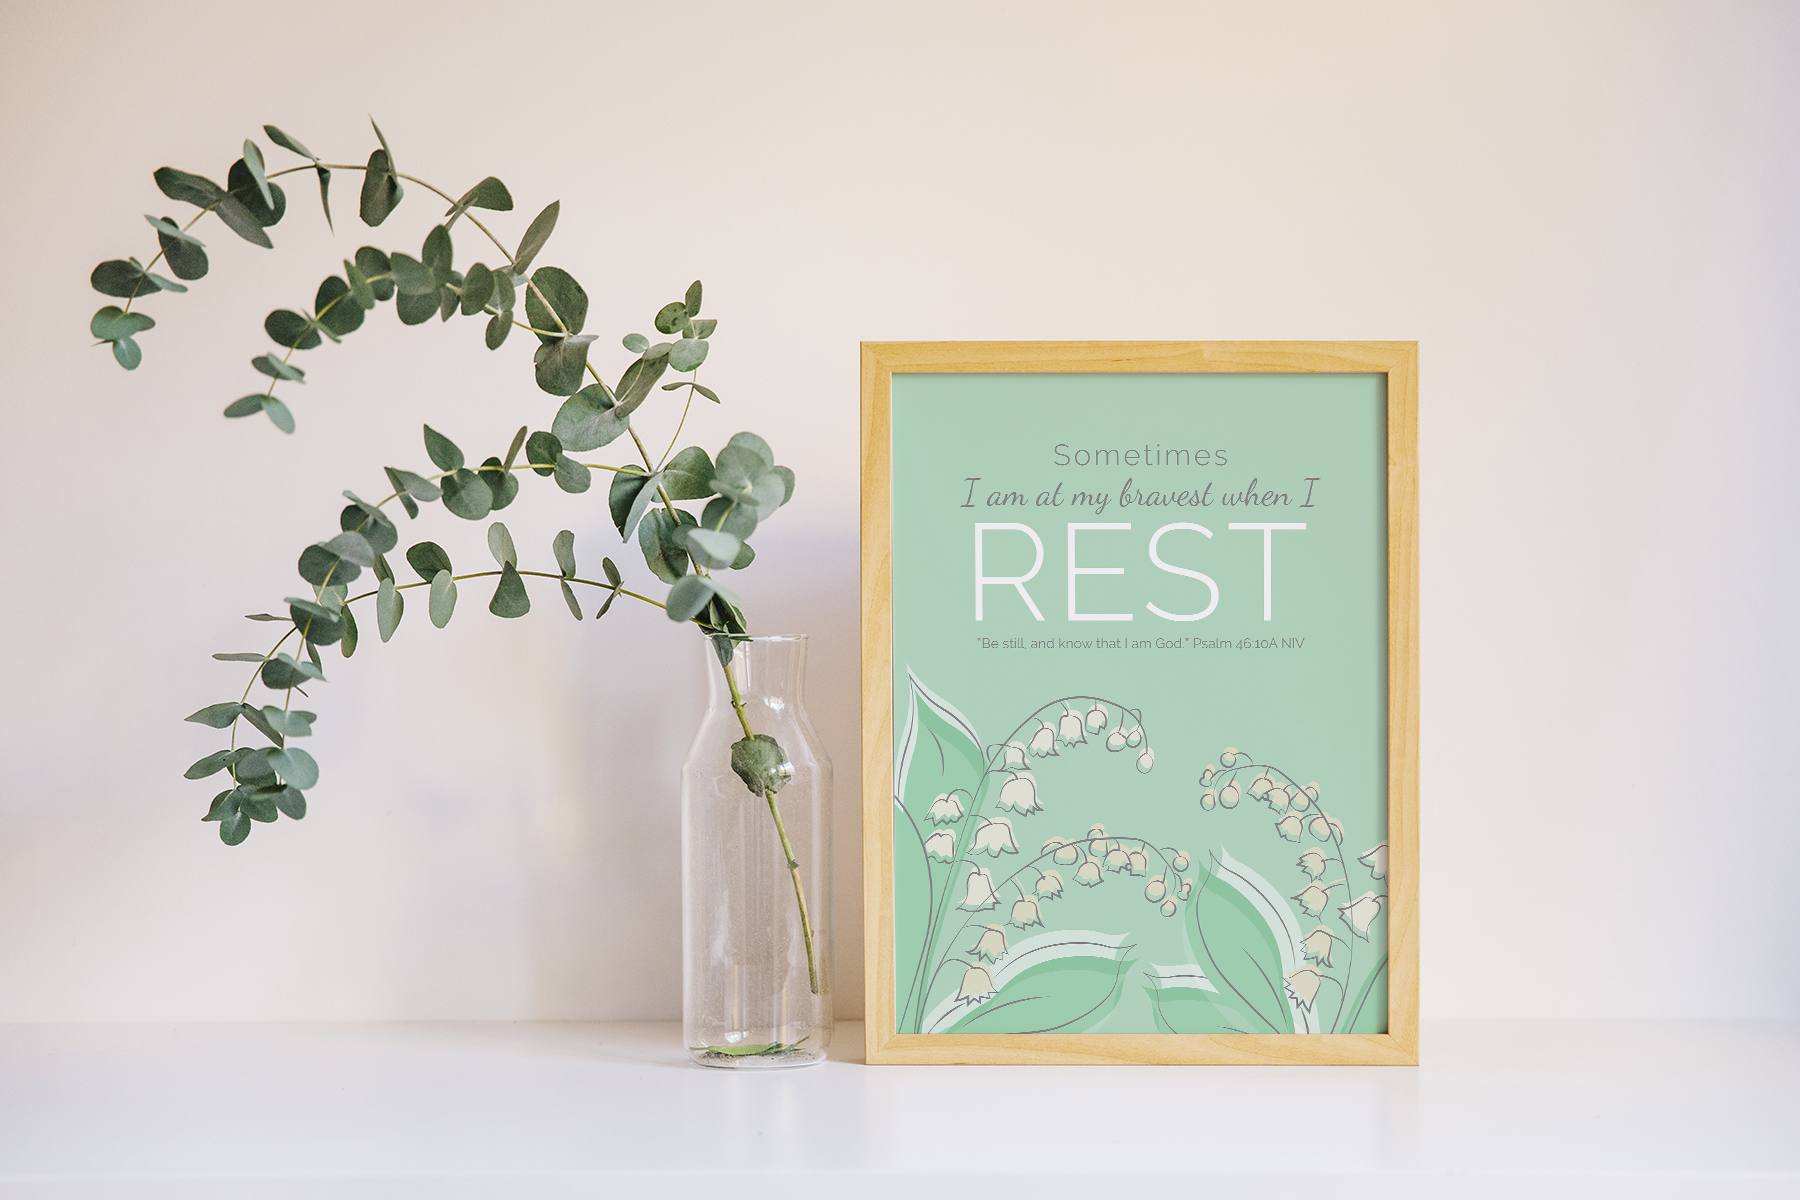 Art From the Heart: When Rest is Brave